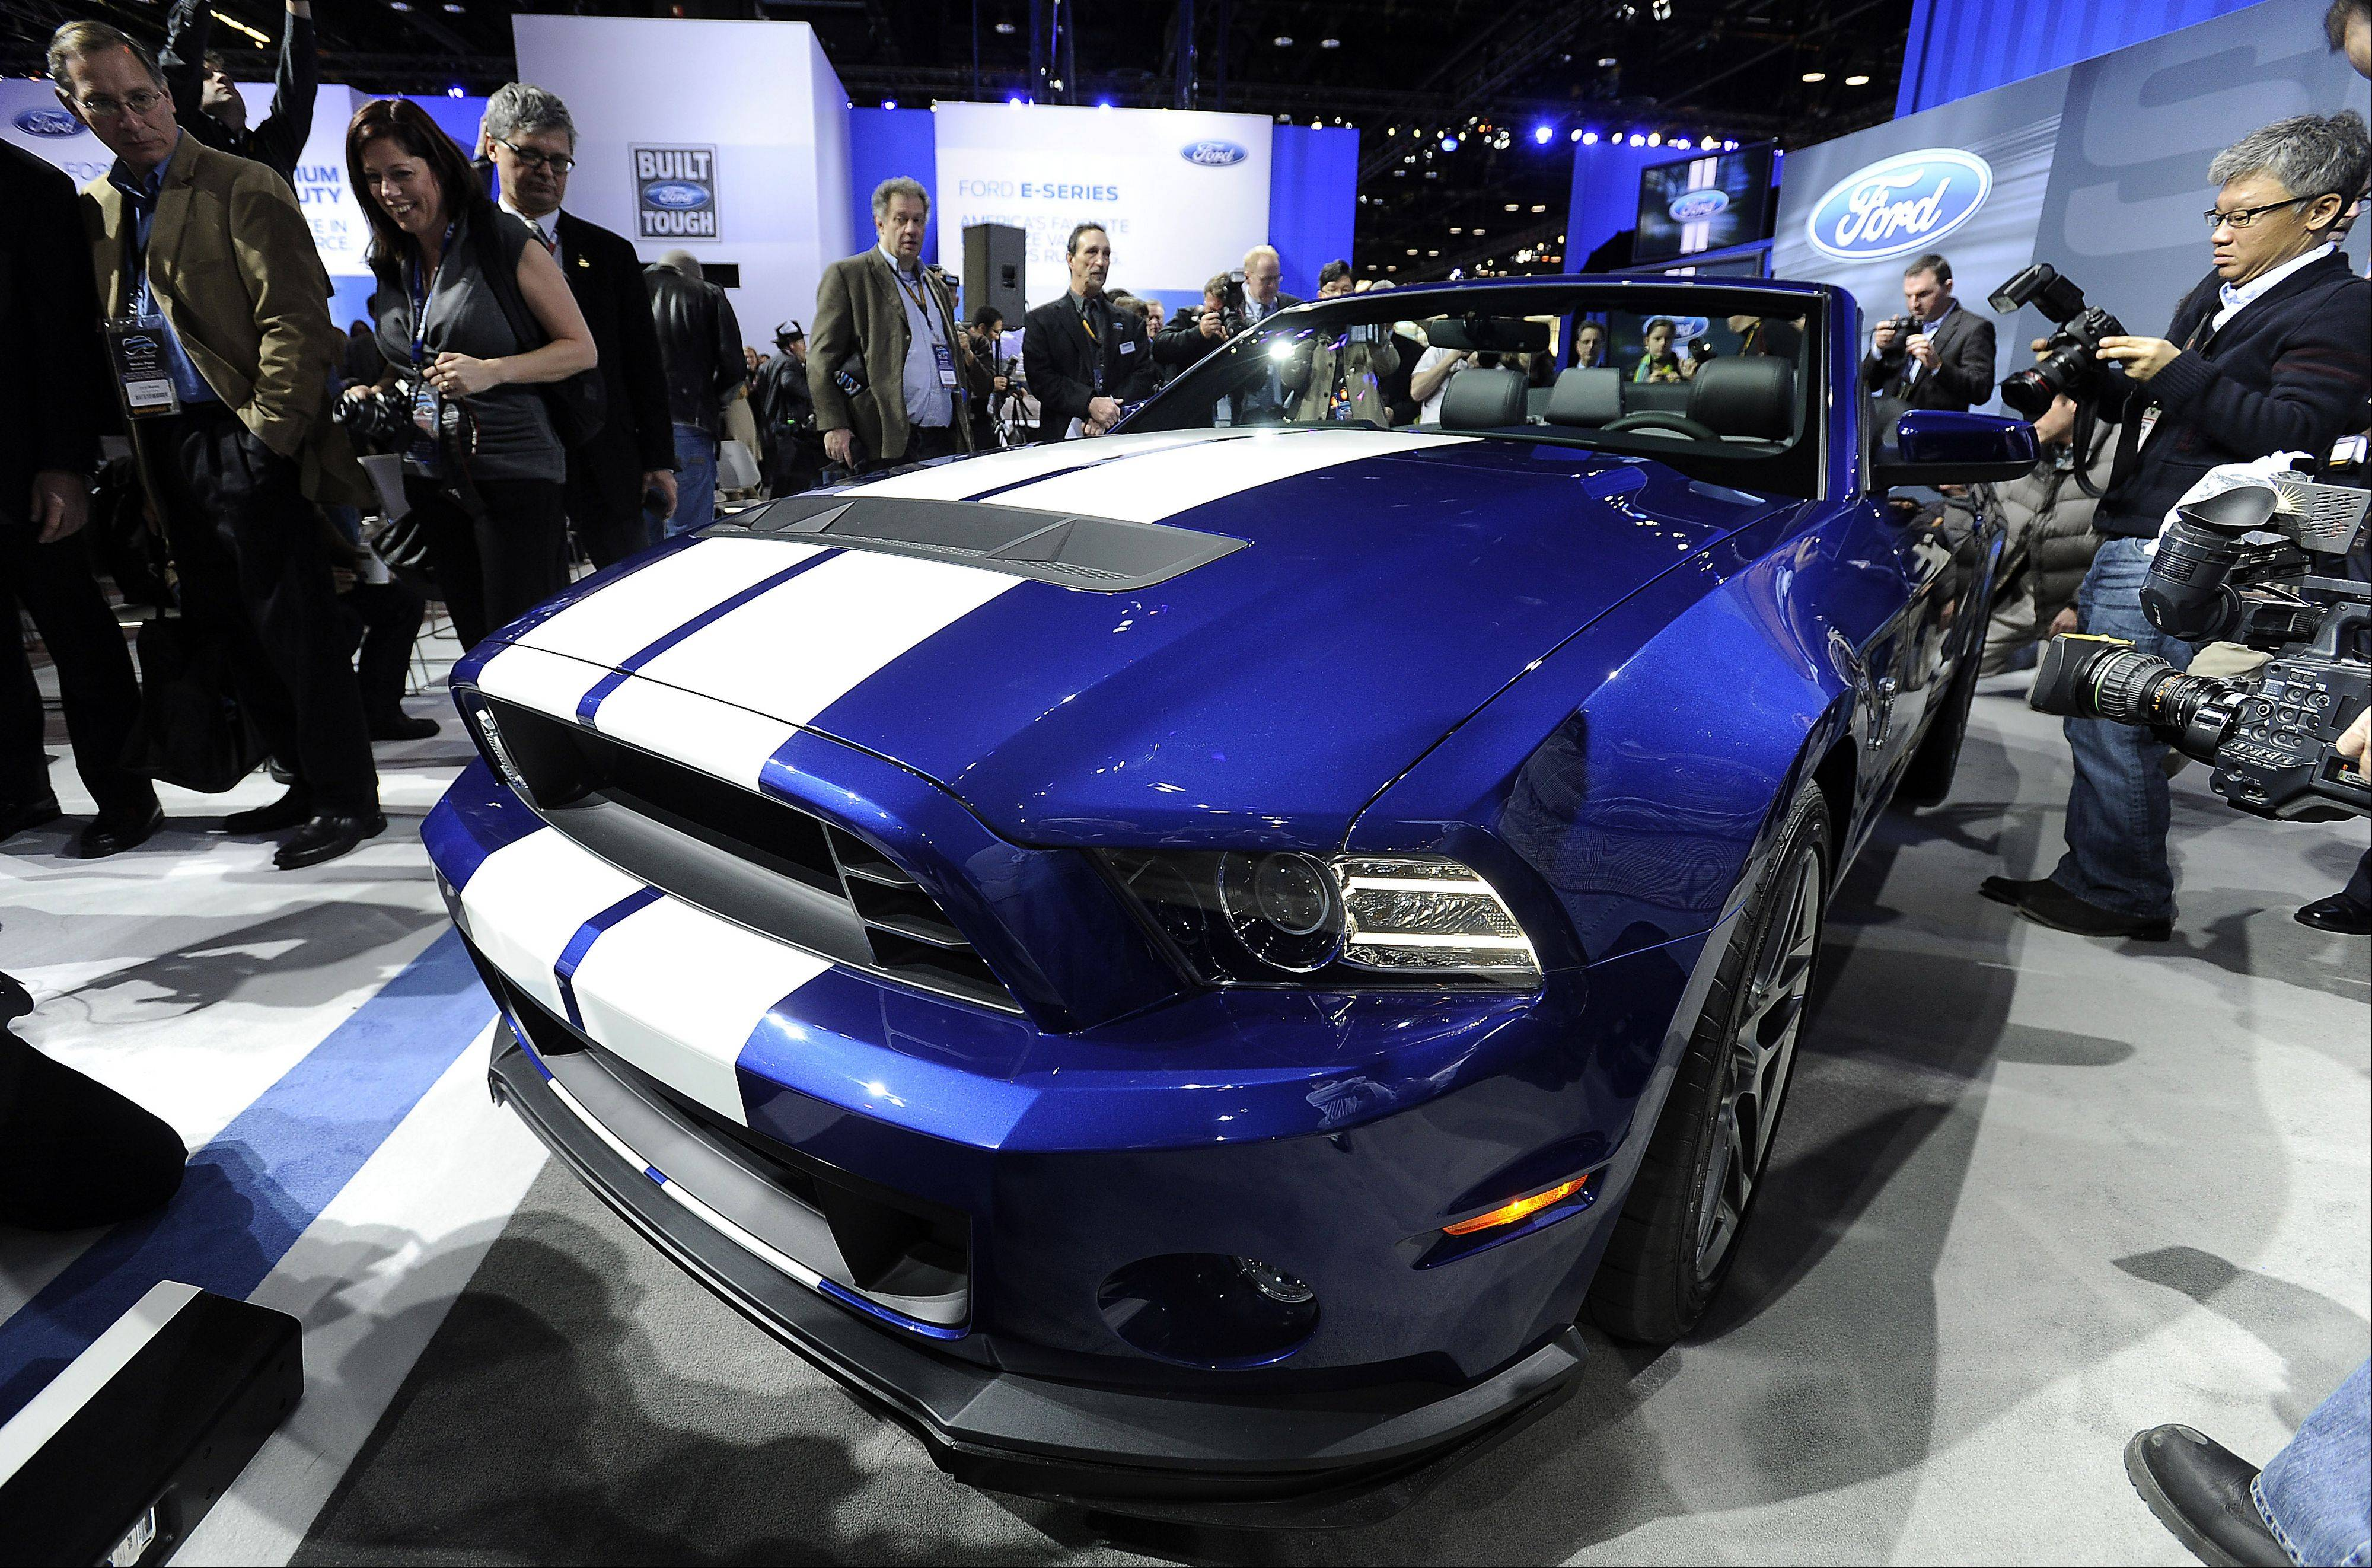 Photographers work and cameramen roll tape on the Ford GT 500 Shelby Mustang, featuring a 600-horsepower V8.